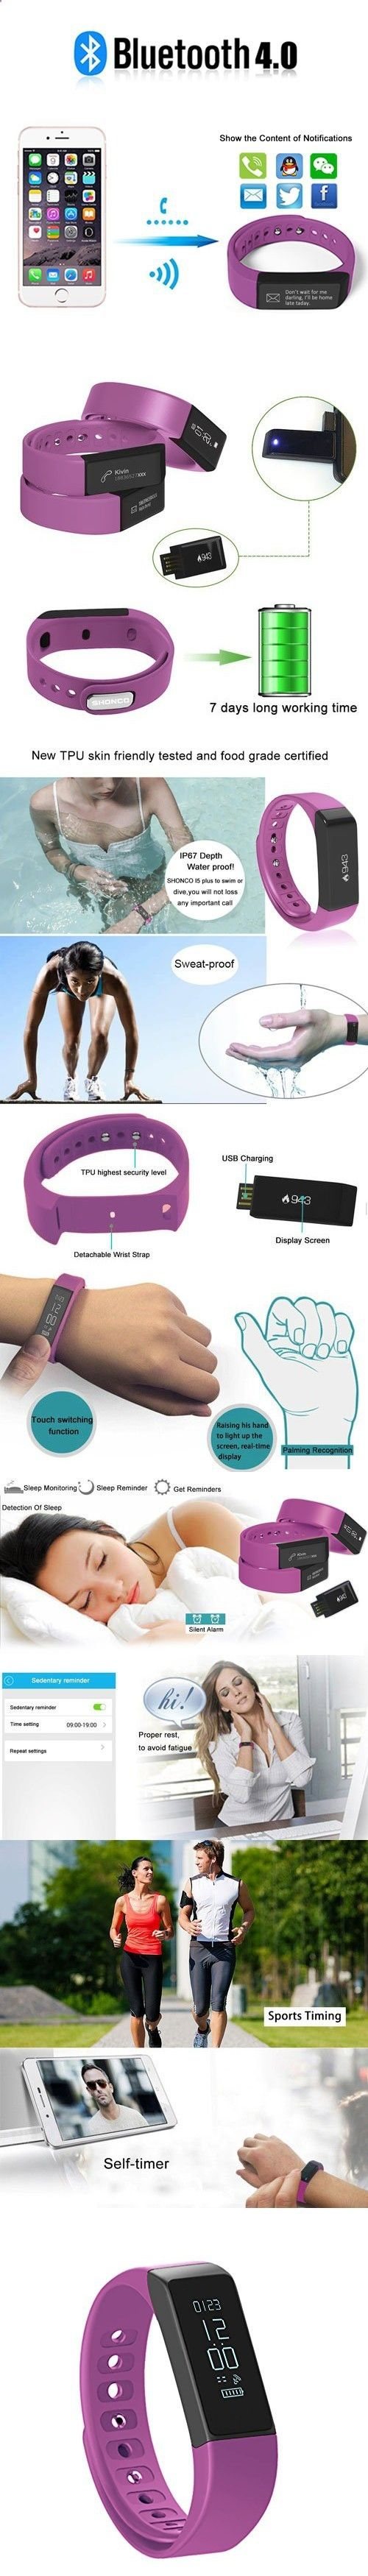 Activity Bracelets Fitness - Fitness Tracker Pedometer SHONCO I5 Plus Waterproof Bluetooth Activity Tracker Smart Sports Band Bracelet Wristband with Touch Screen Calories Counter Health Sleep Monitor for iPhone Android Phones - The benefits of wearing these smart bracelets are not only in your comfort, but also in that they are able to control all your physical progress